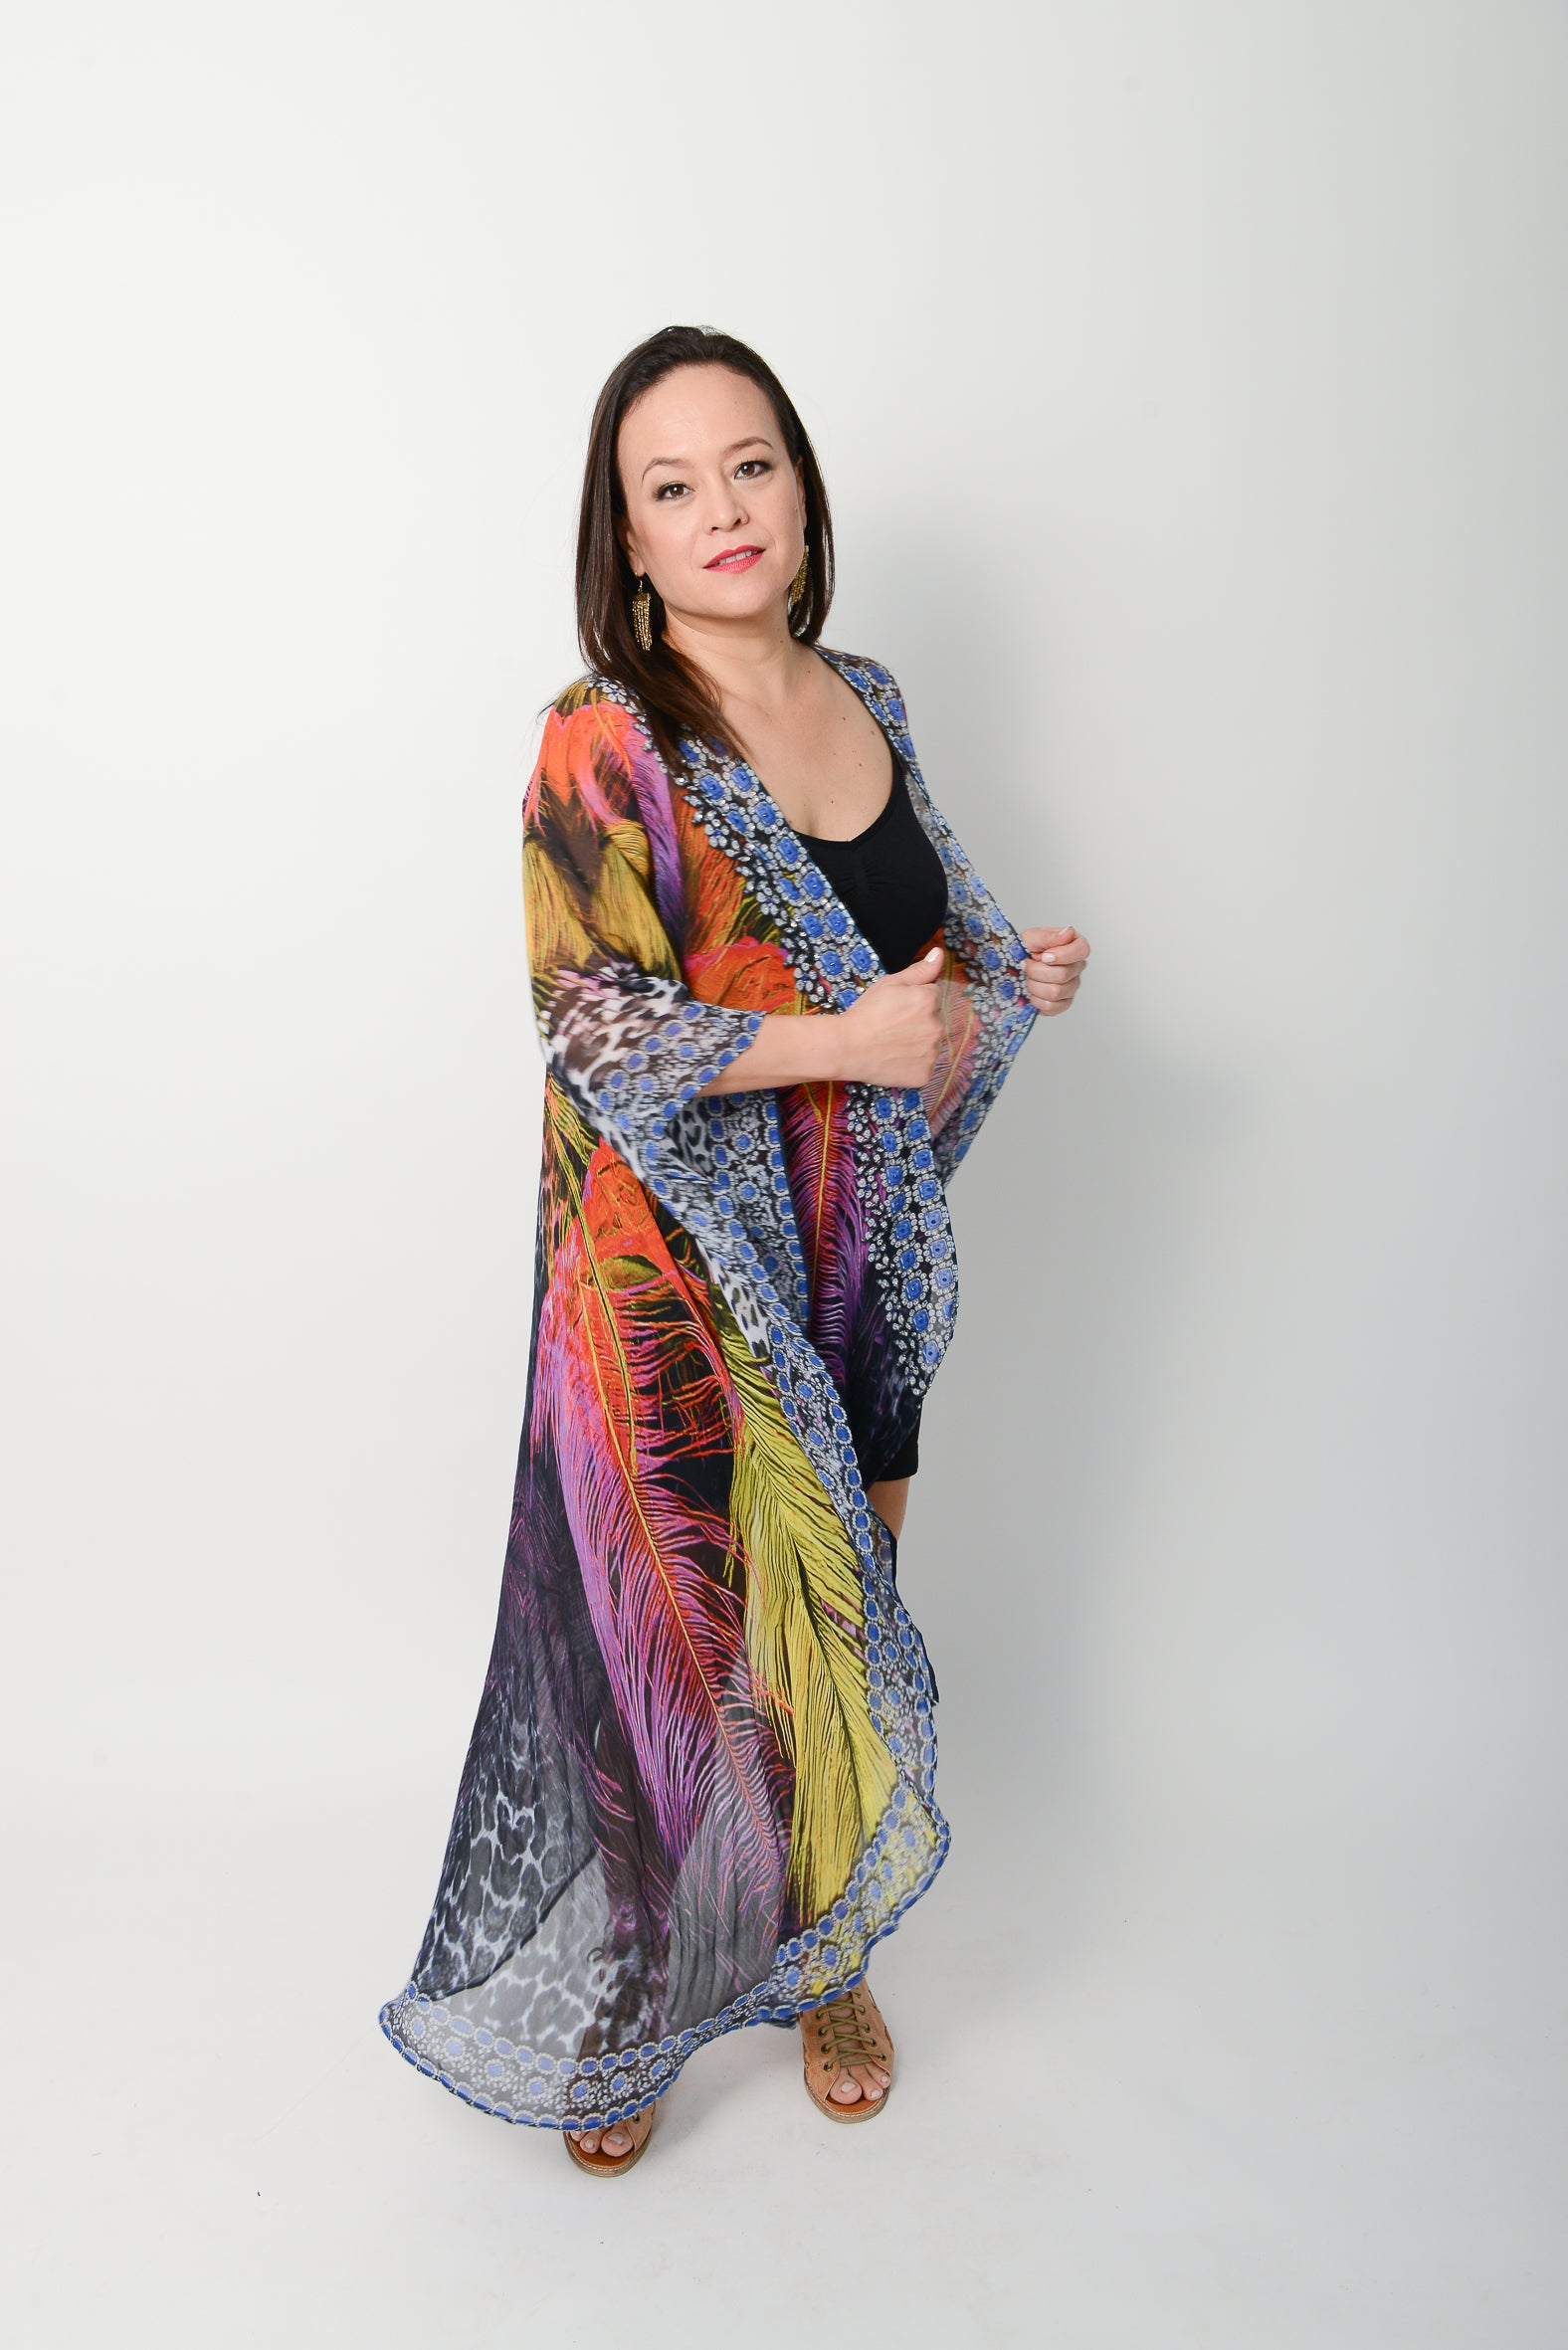 Exotic Feather Cape - GlamTanz Kaftans & Resortwear Sydney Australia